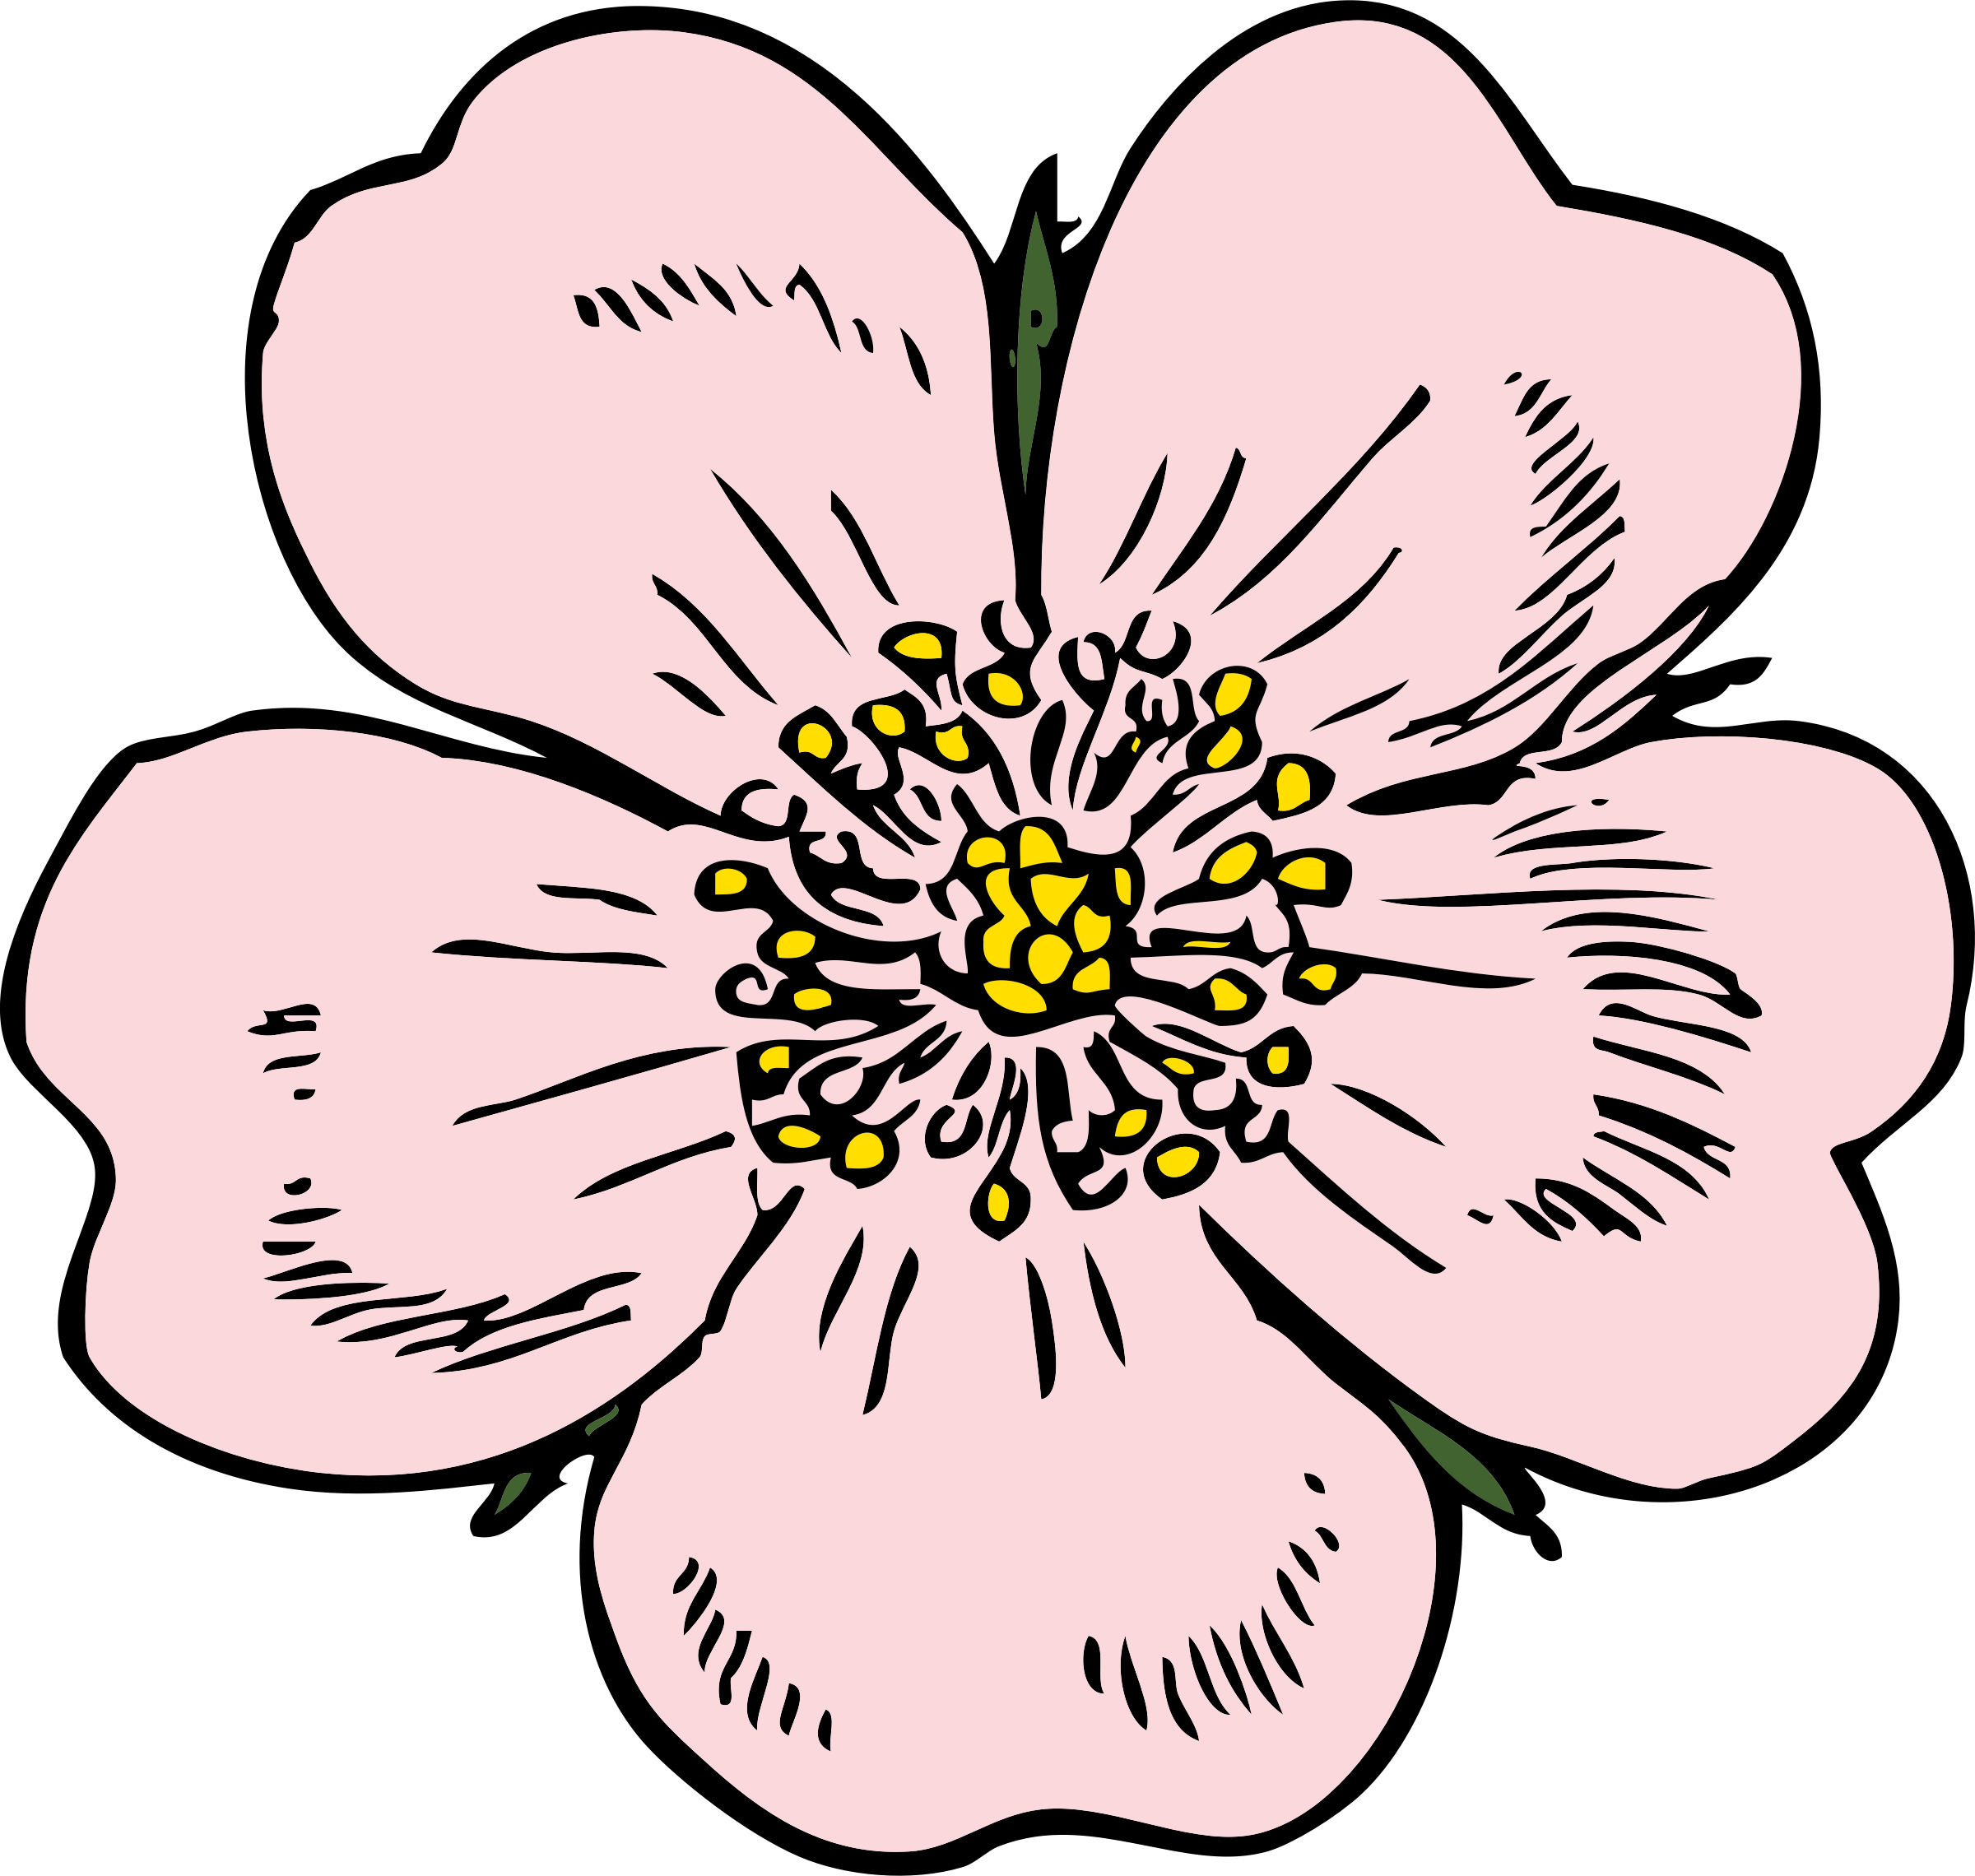 Bud drawing wild rose. Encode clipart to base